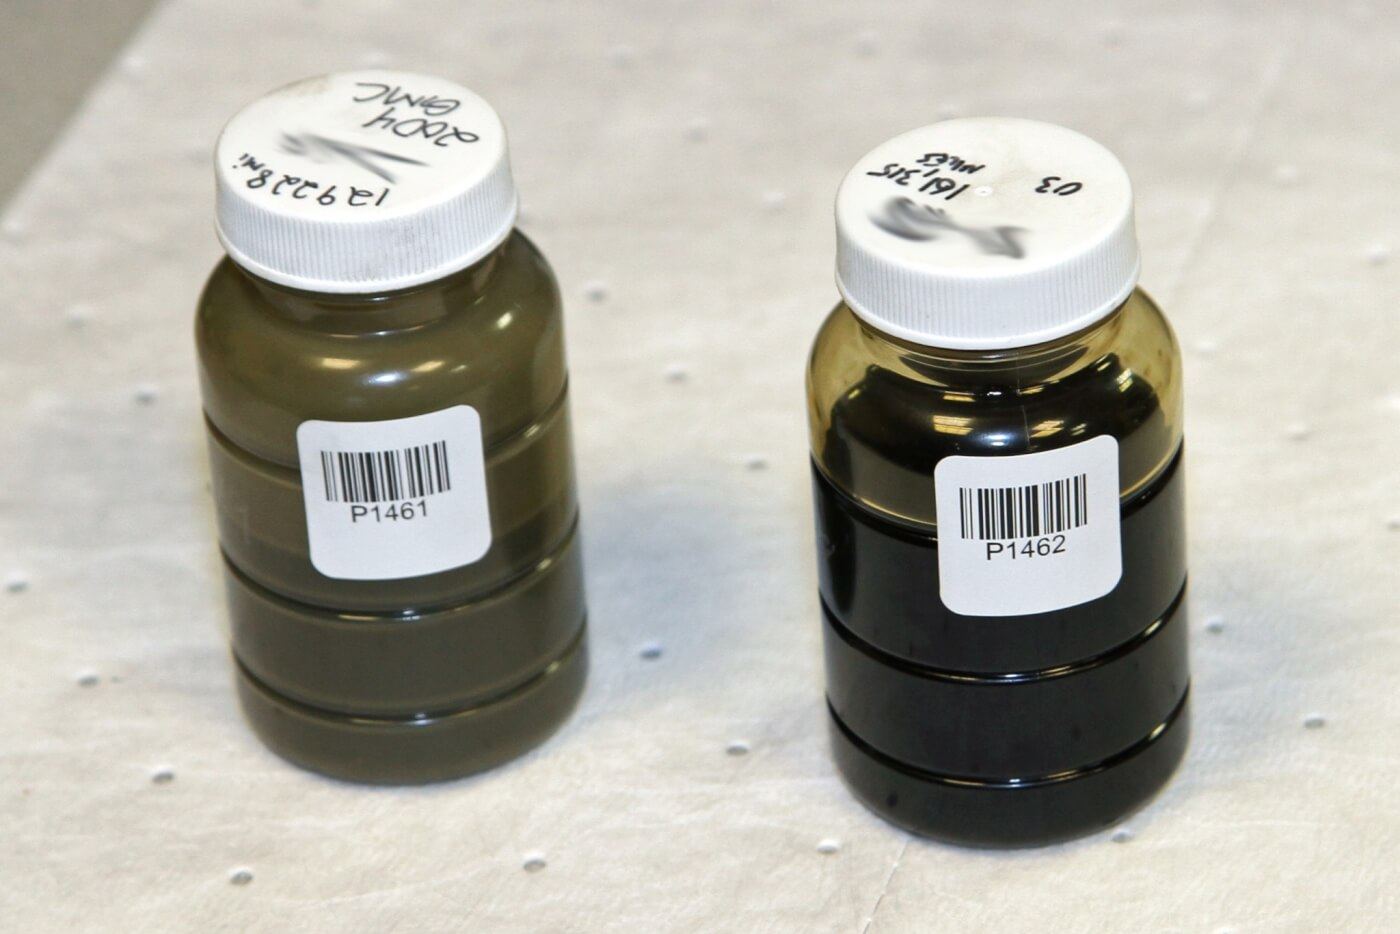 7. Each sample bottle gets its own unique number and bar code so that it can be logged and scanned at each test station to be sure that the test results correlate to the proper sample.